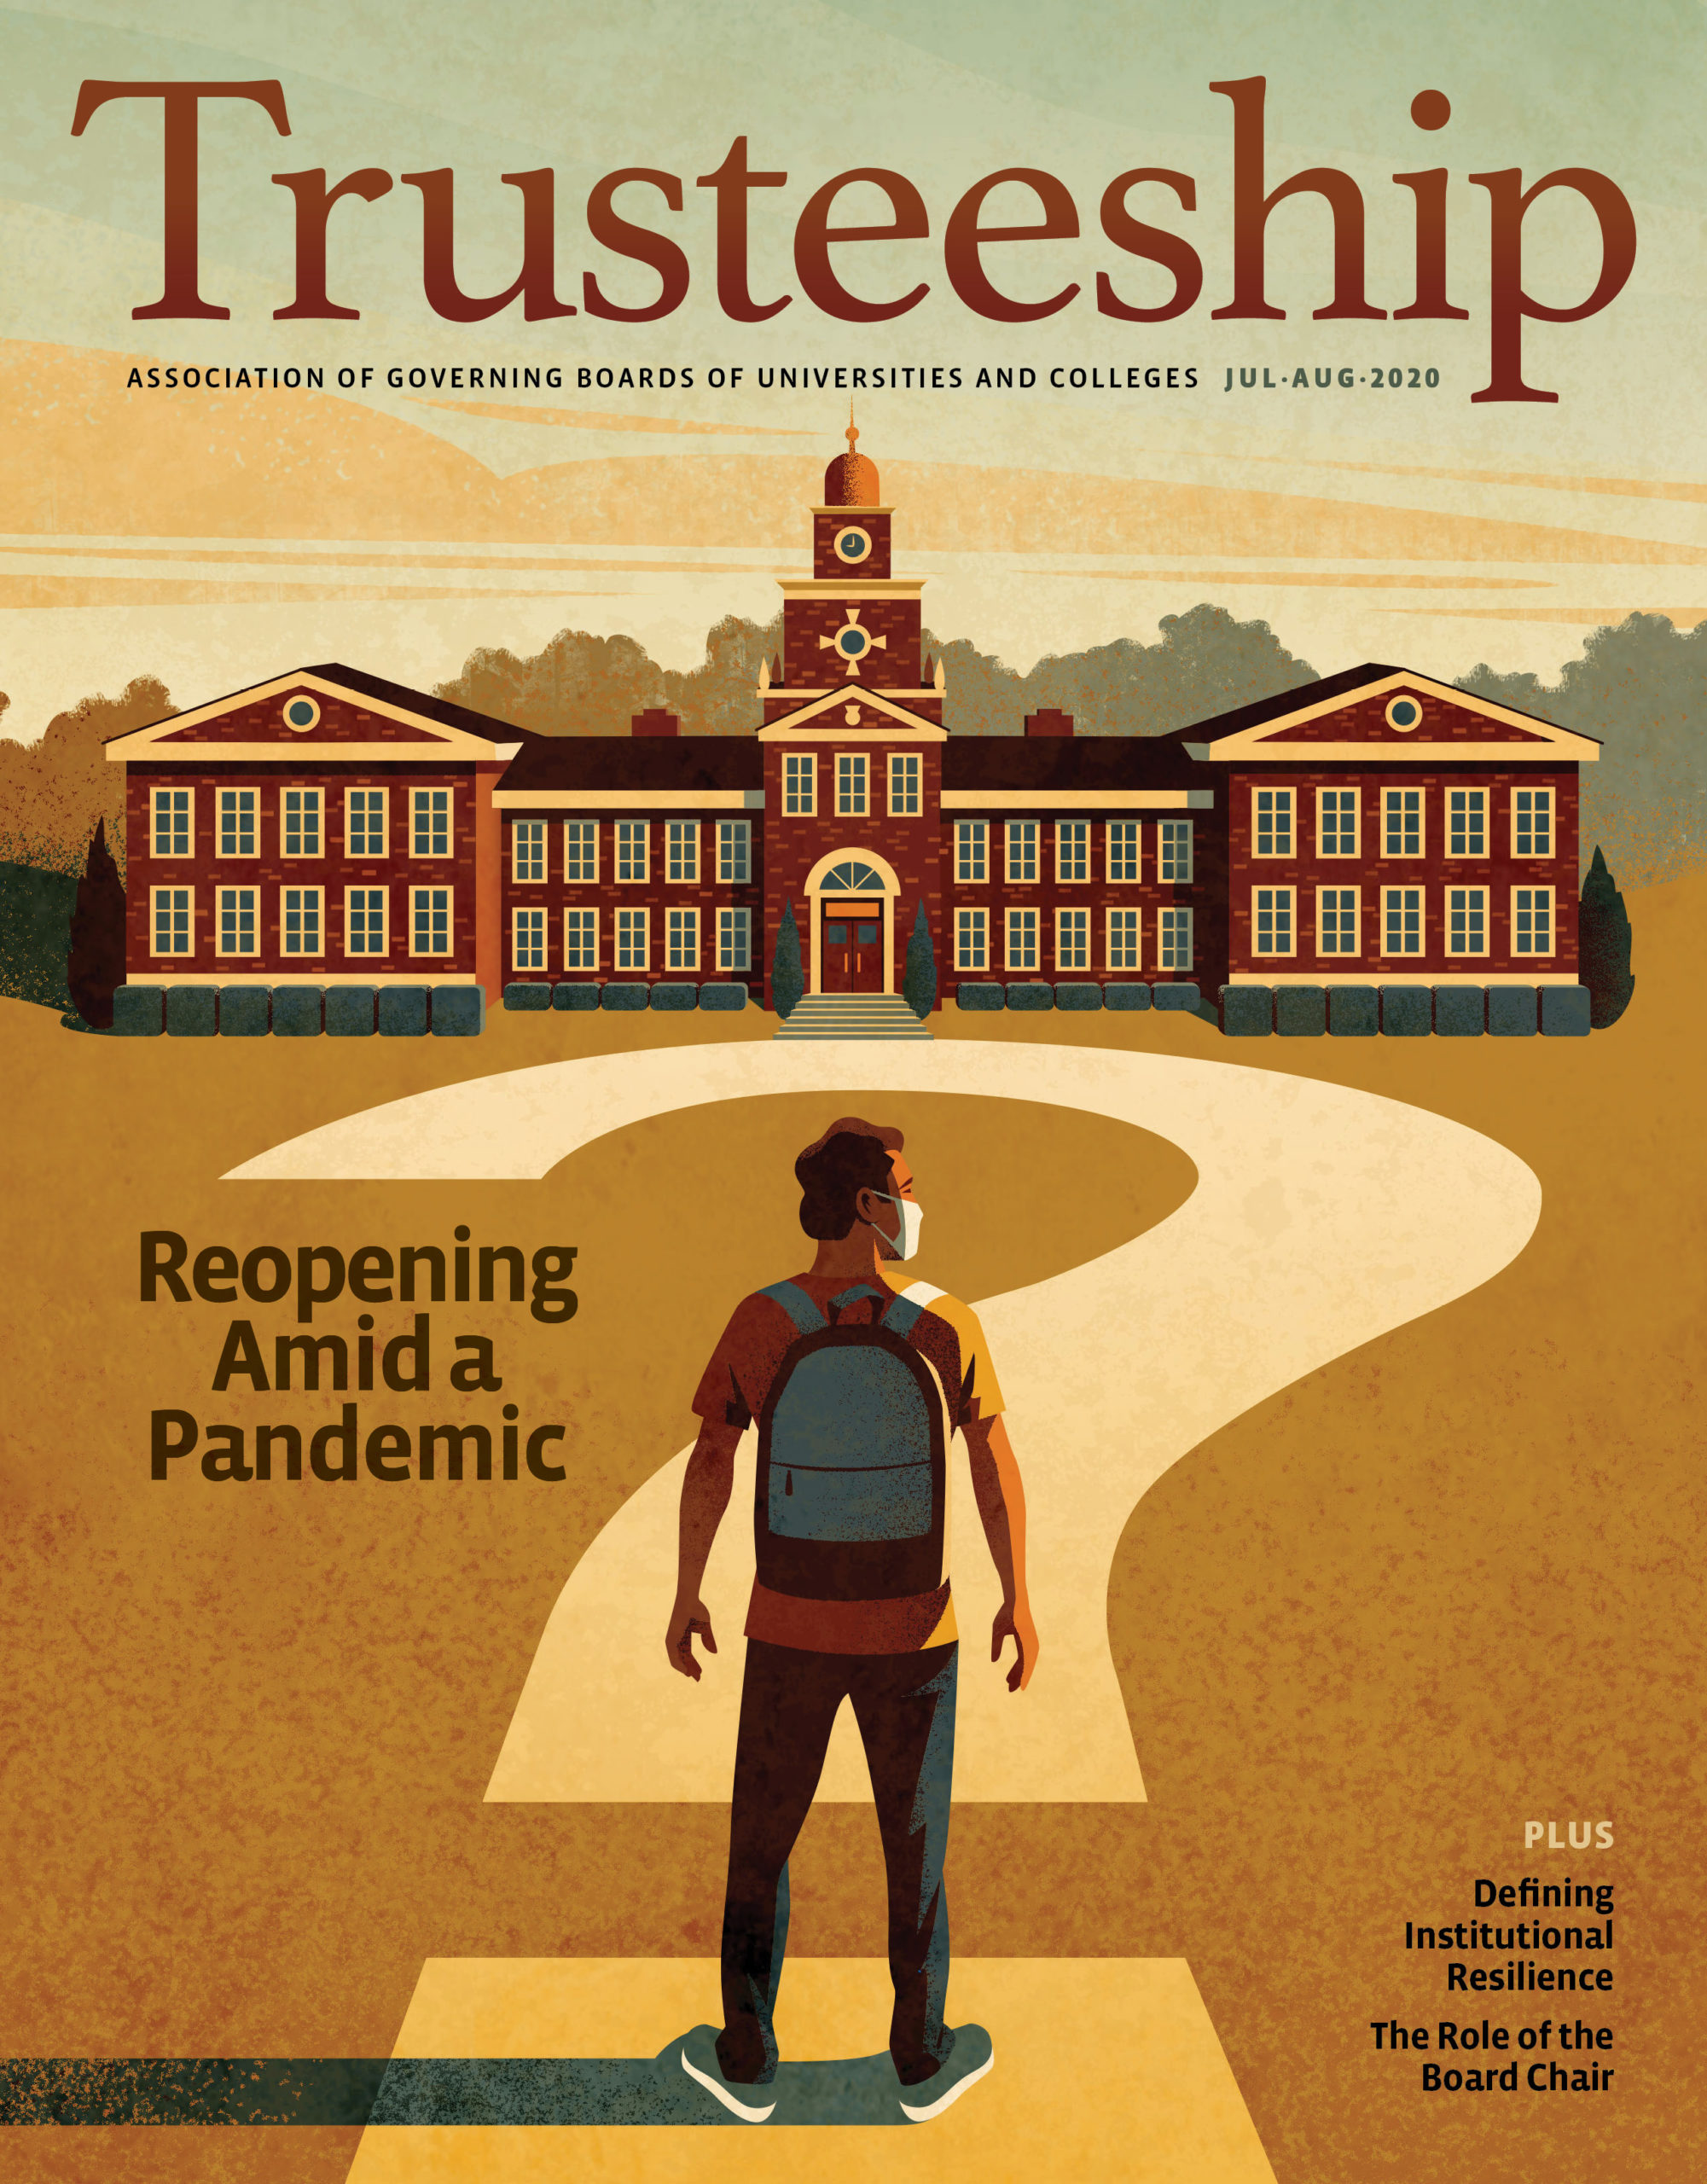 Trusteeship Magazine: July/August 2020 Cover - Opening Amid a Pandemic